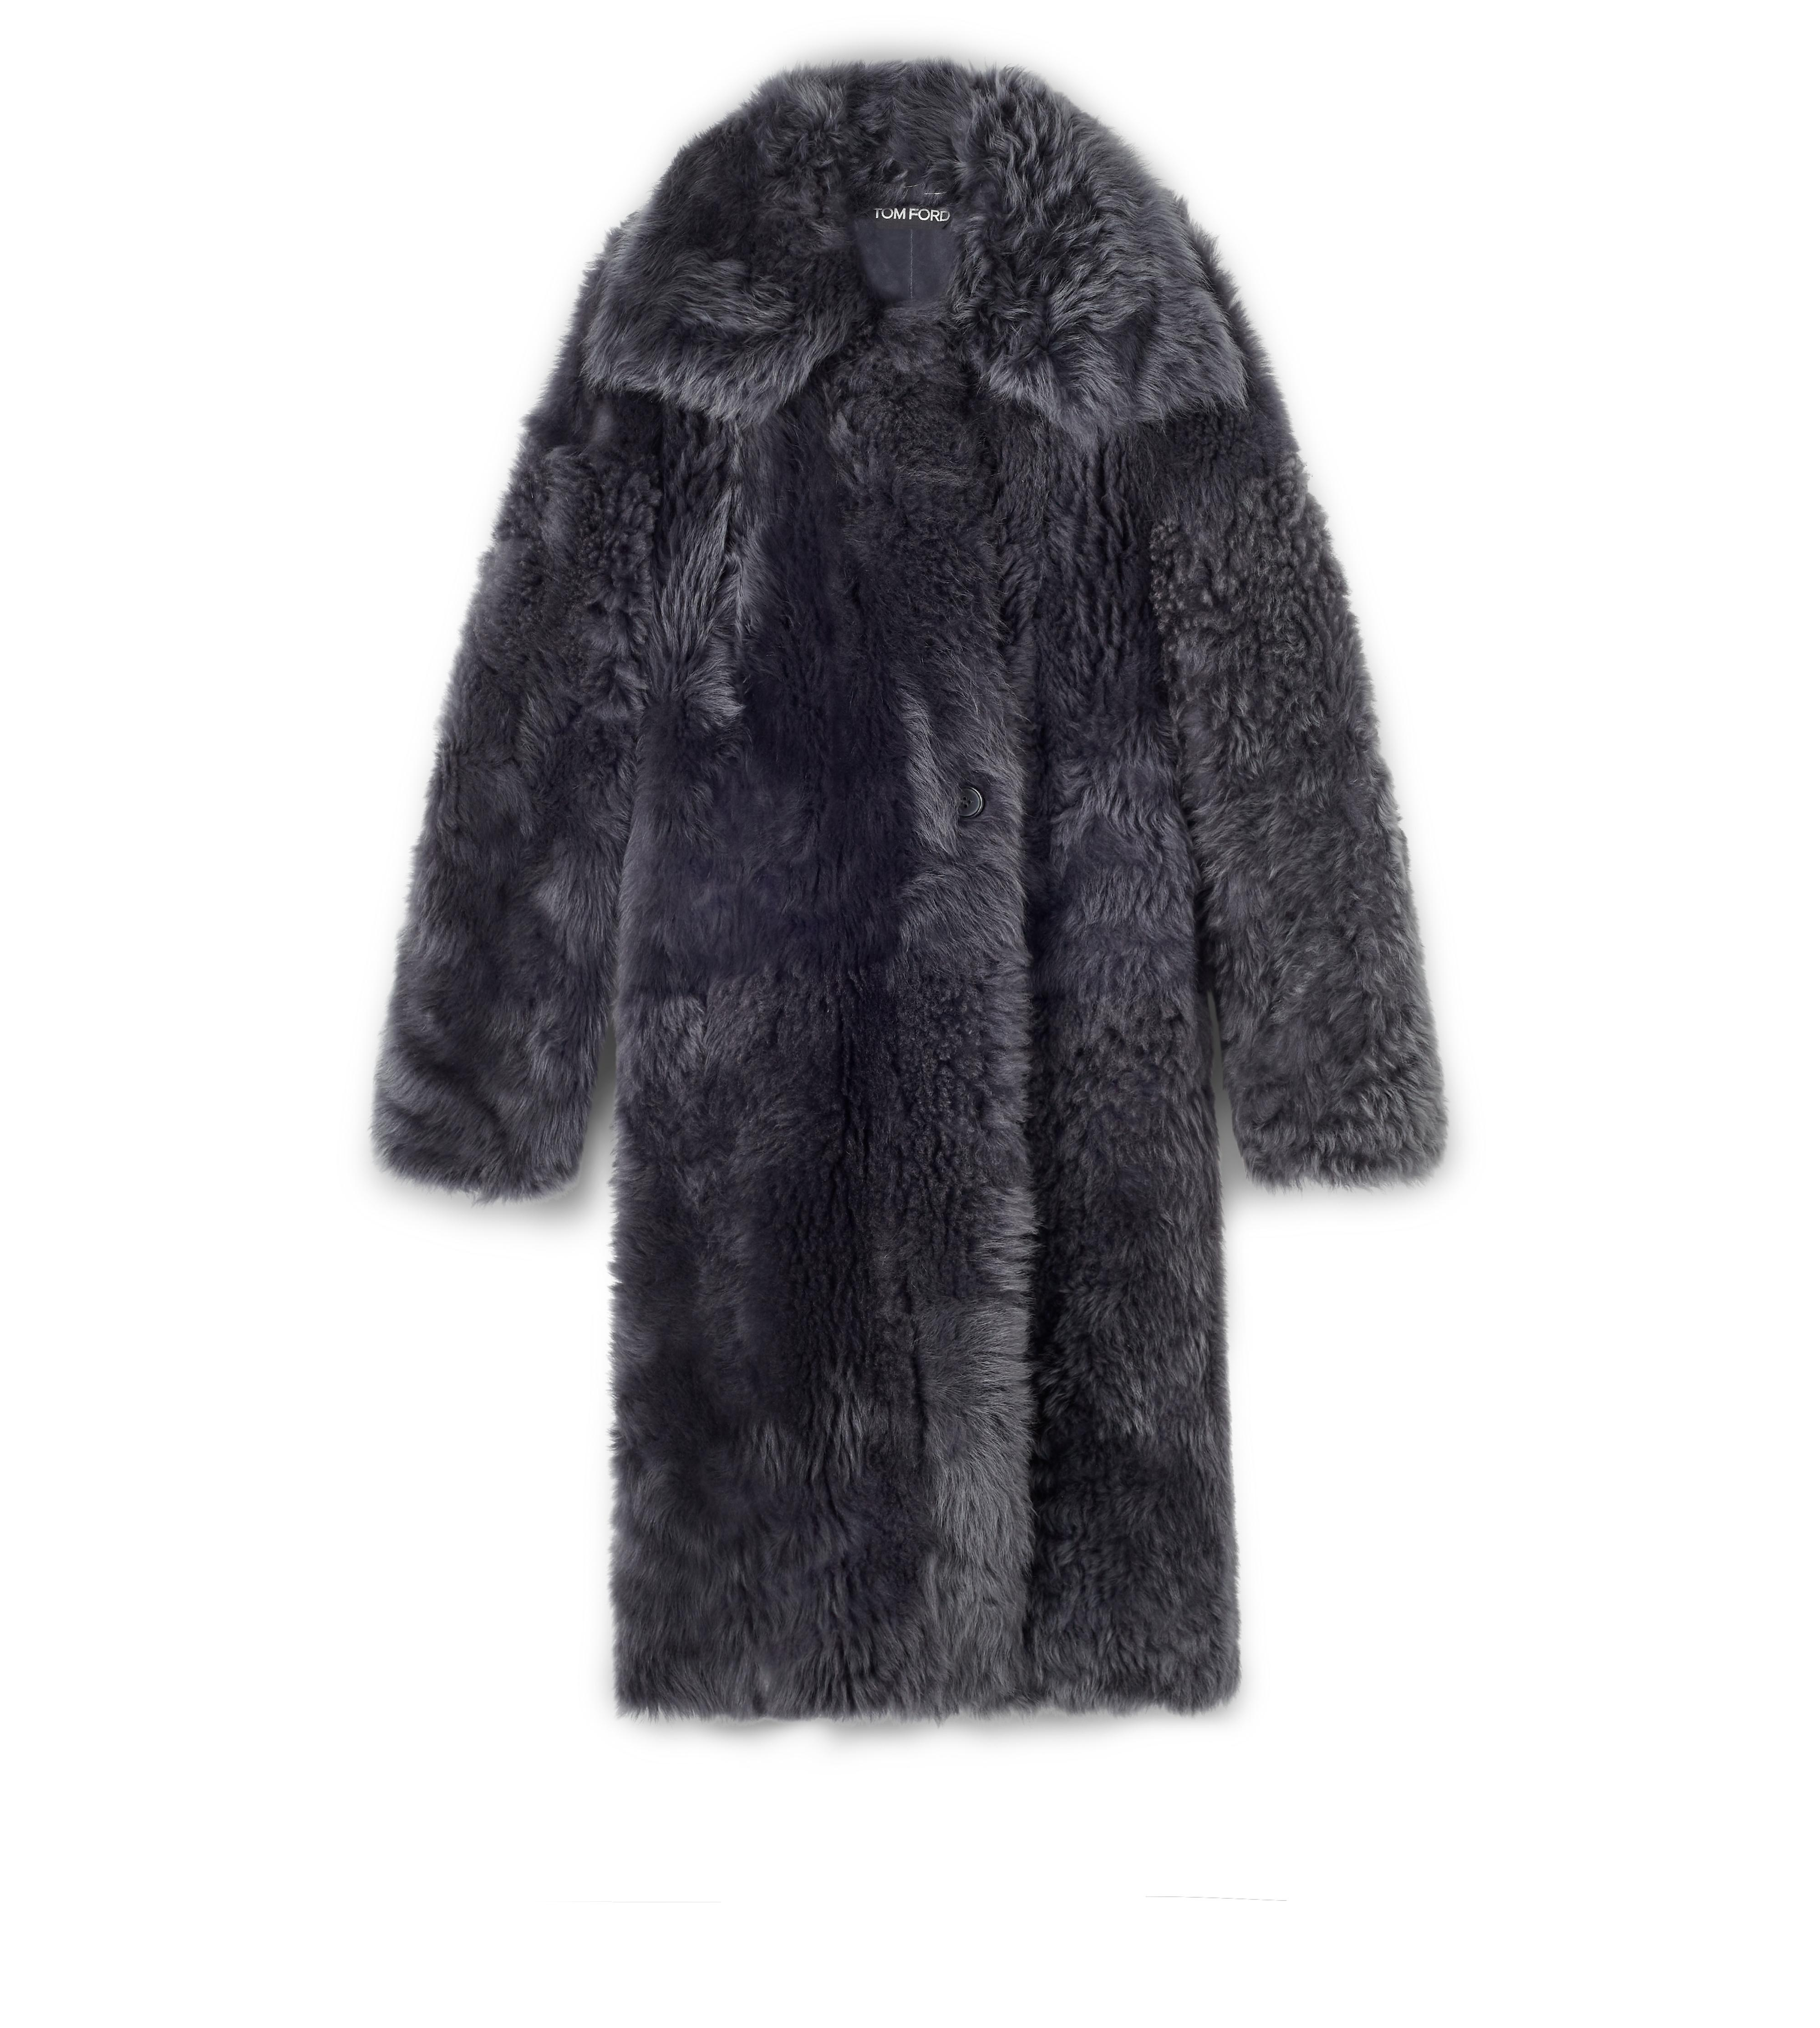 SHAGGY SHEARLING OVERSIZED COAT A thumbnail